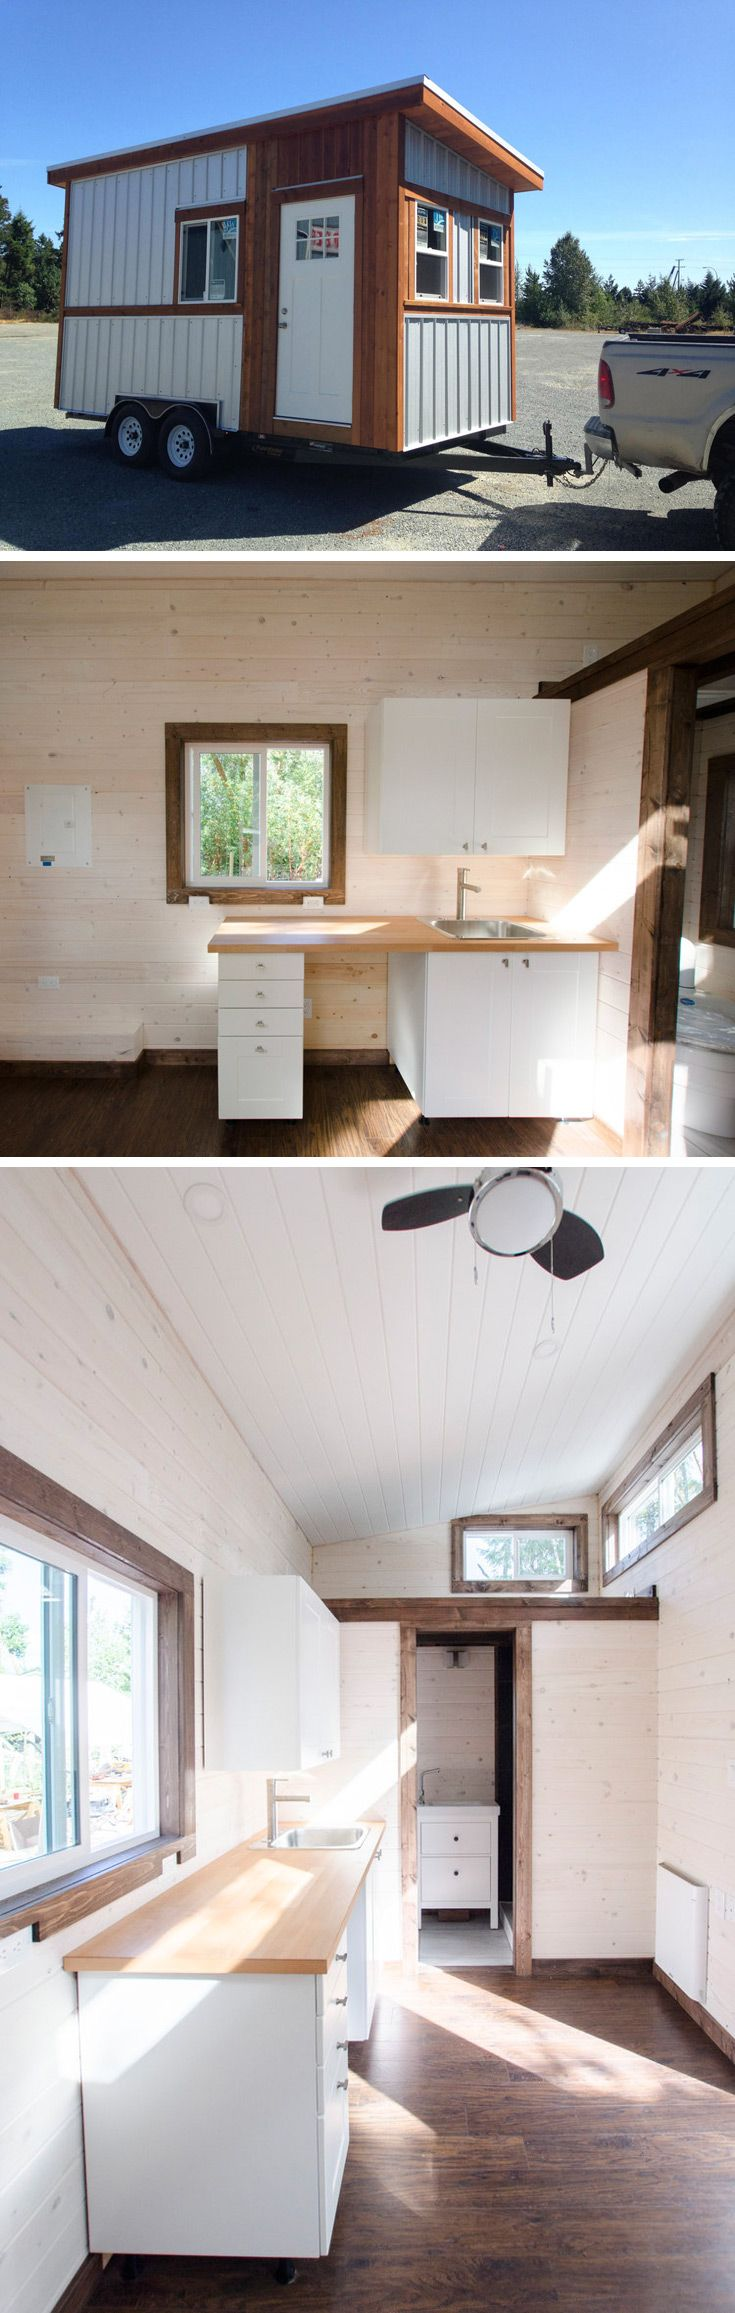 Stormey is a simple yet will-built tiny house that includes all the basic necessities you need.  The small size also makes it very easy to tow.